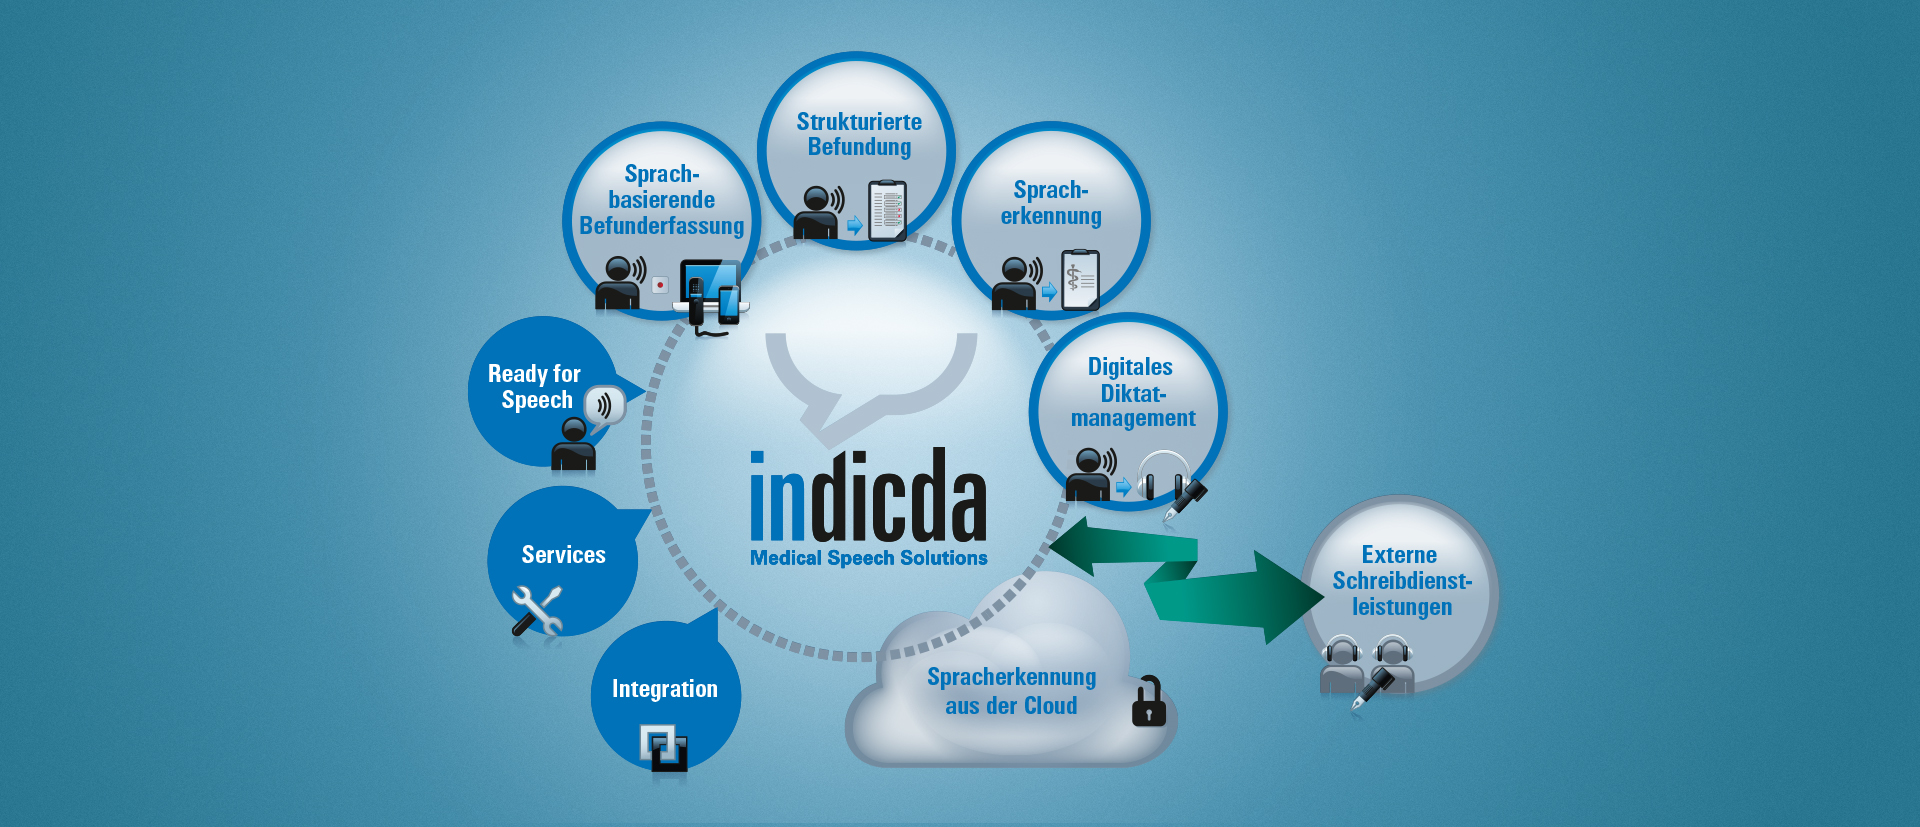 indicda Medical Speech Solutions